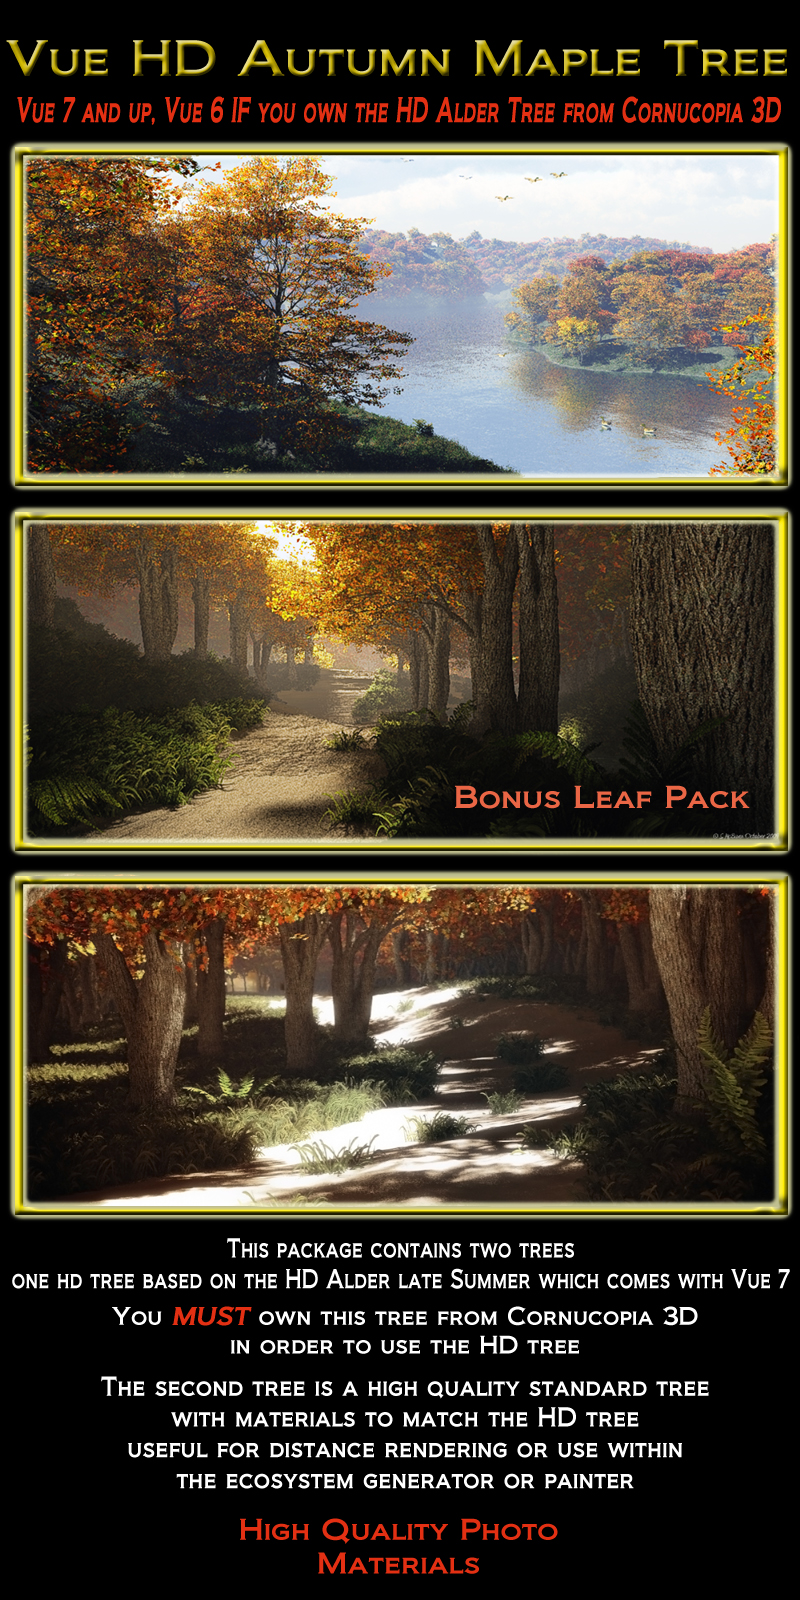 Vue HD Fall Maple Tree Pack